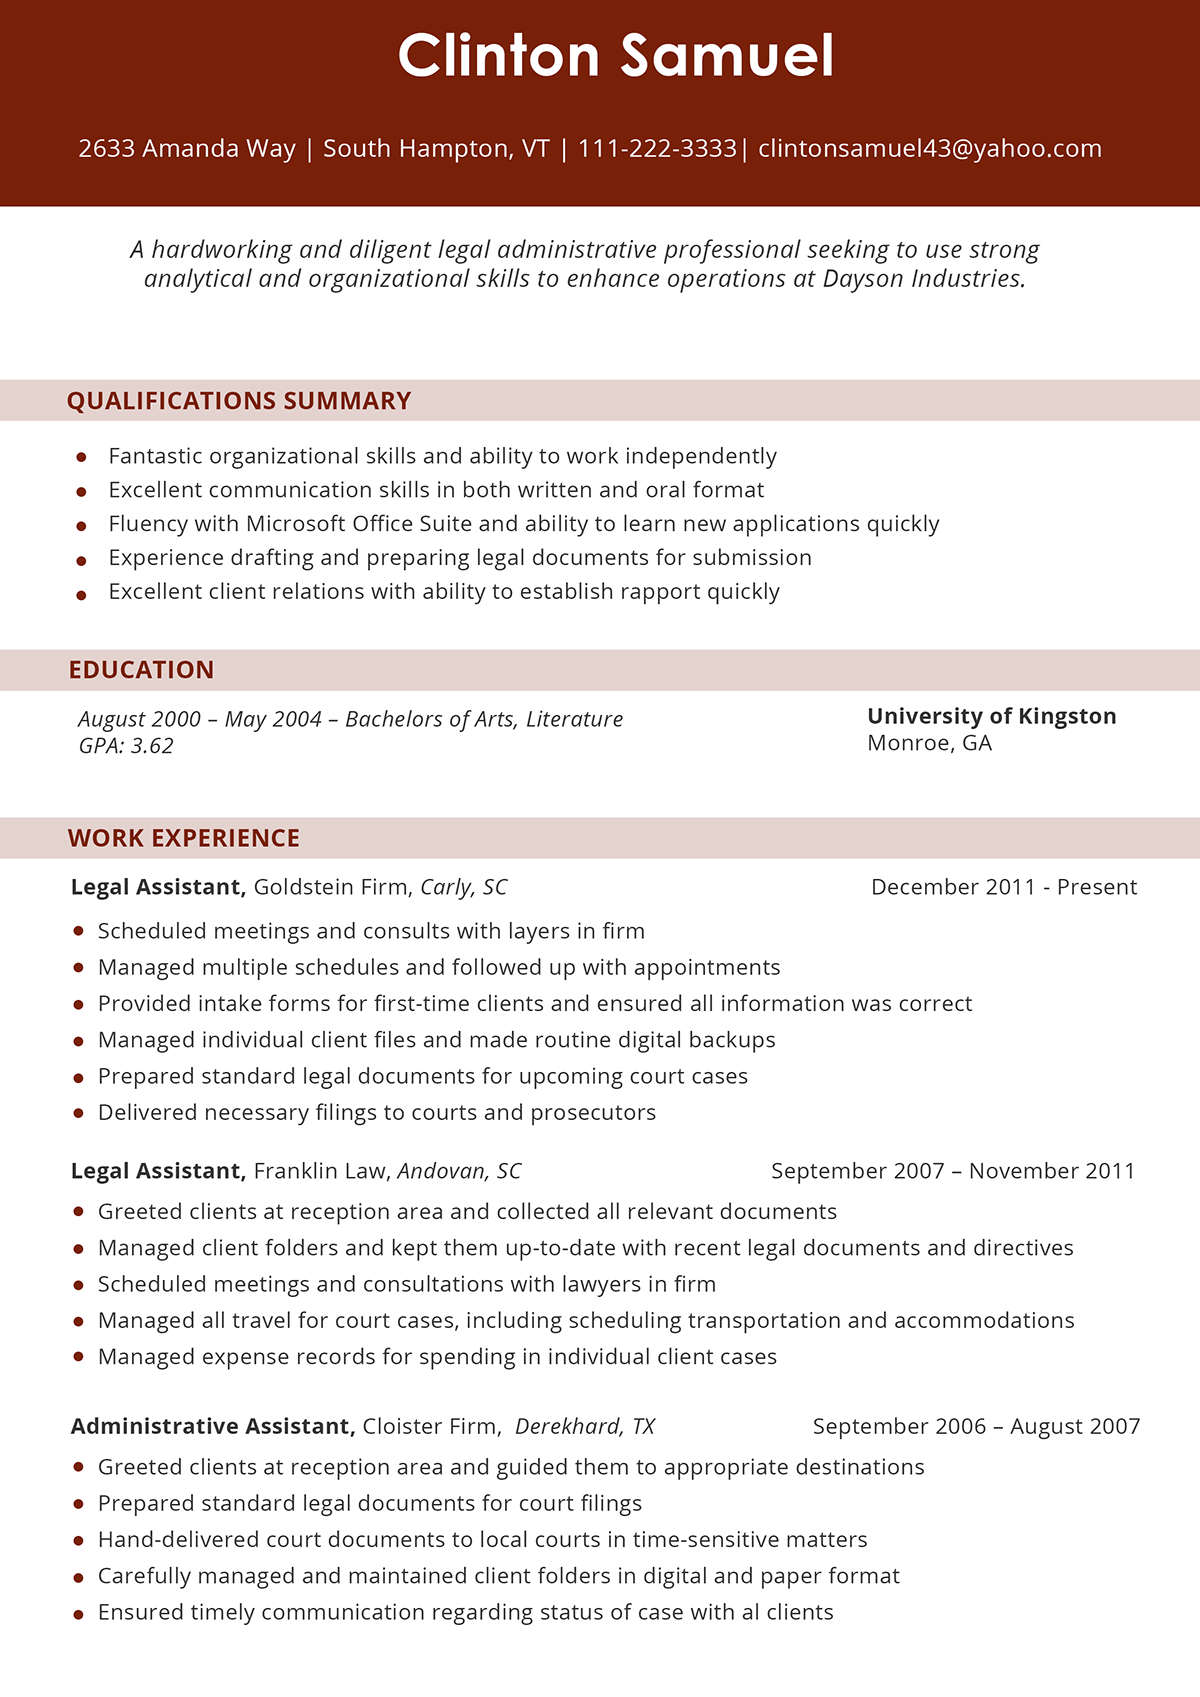 Legal Resume Format on Pantone Canvas Gallery